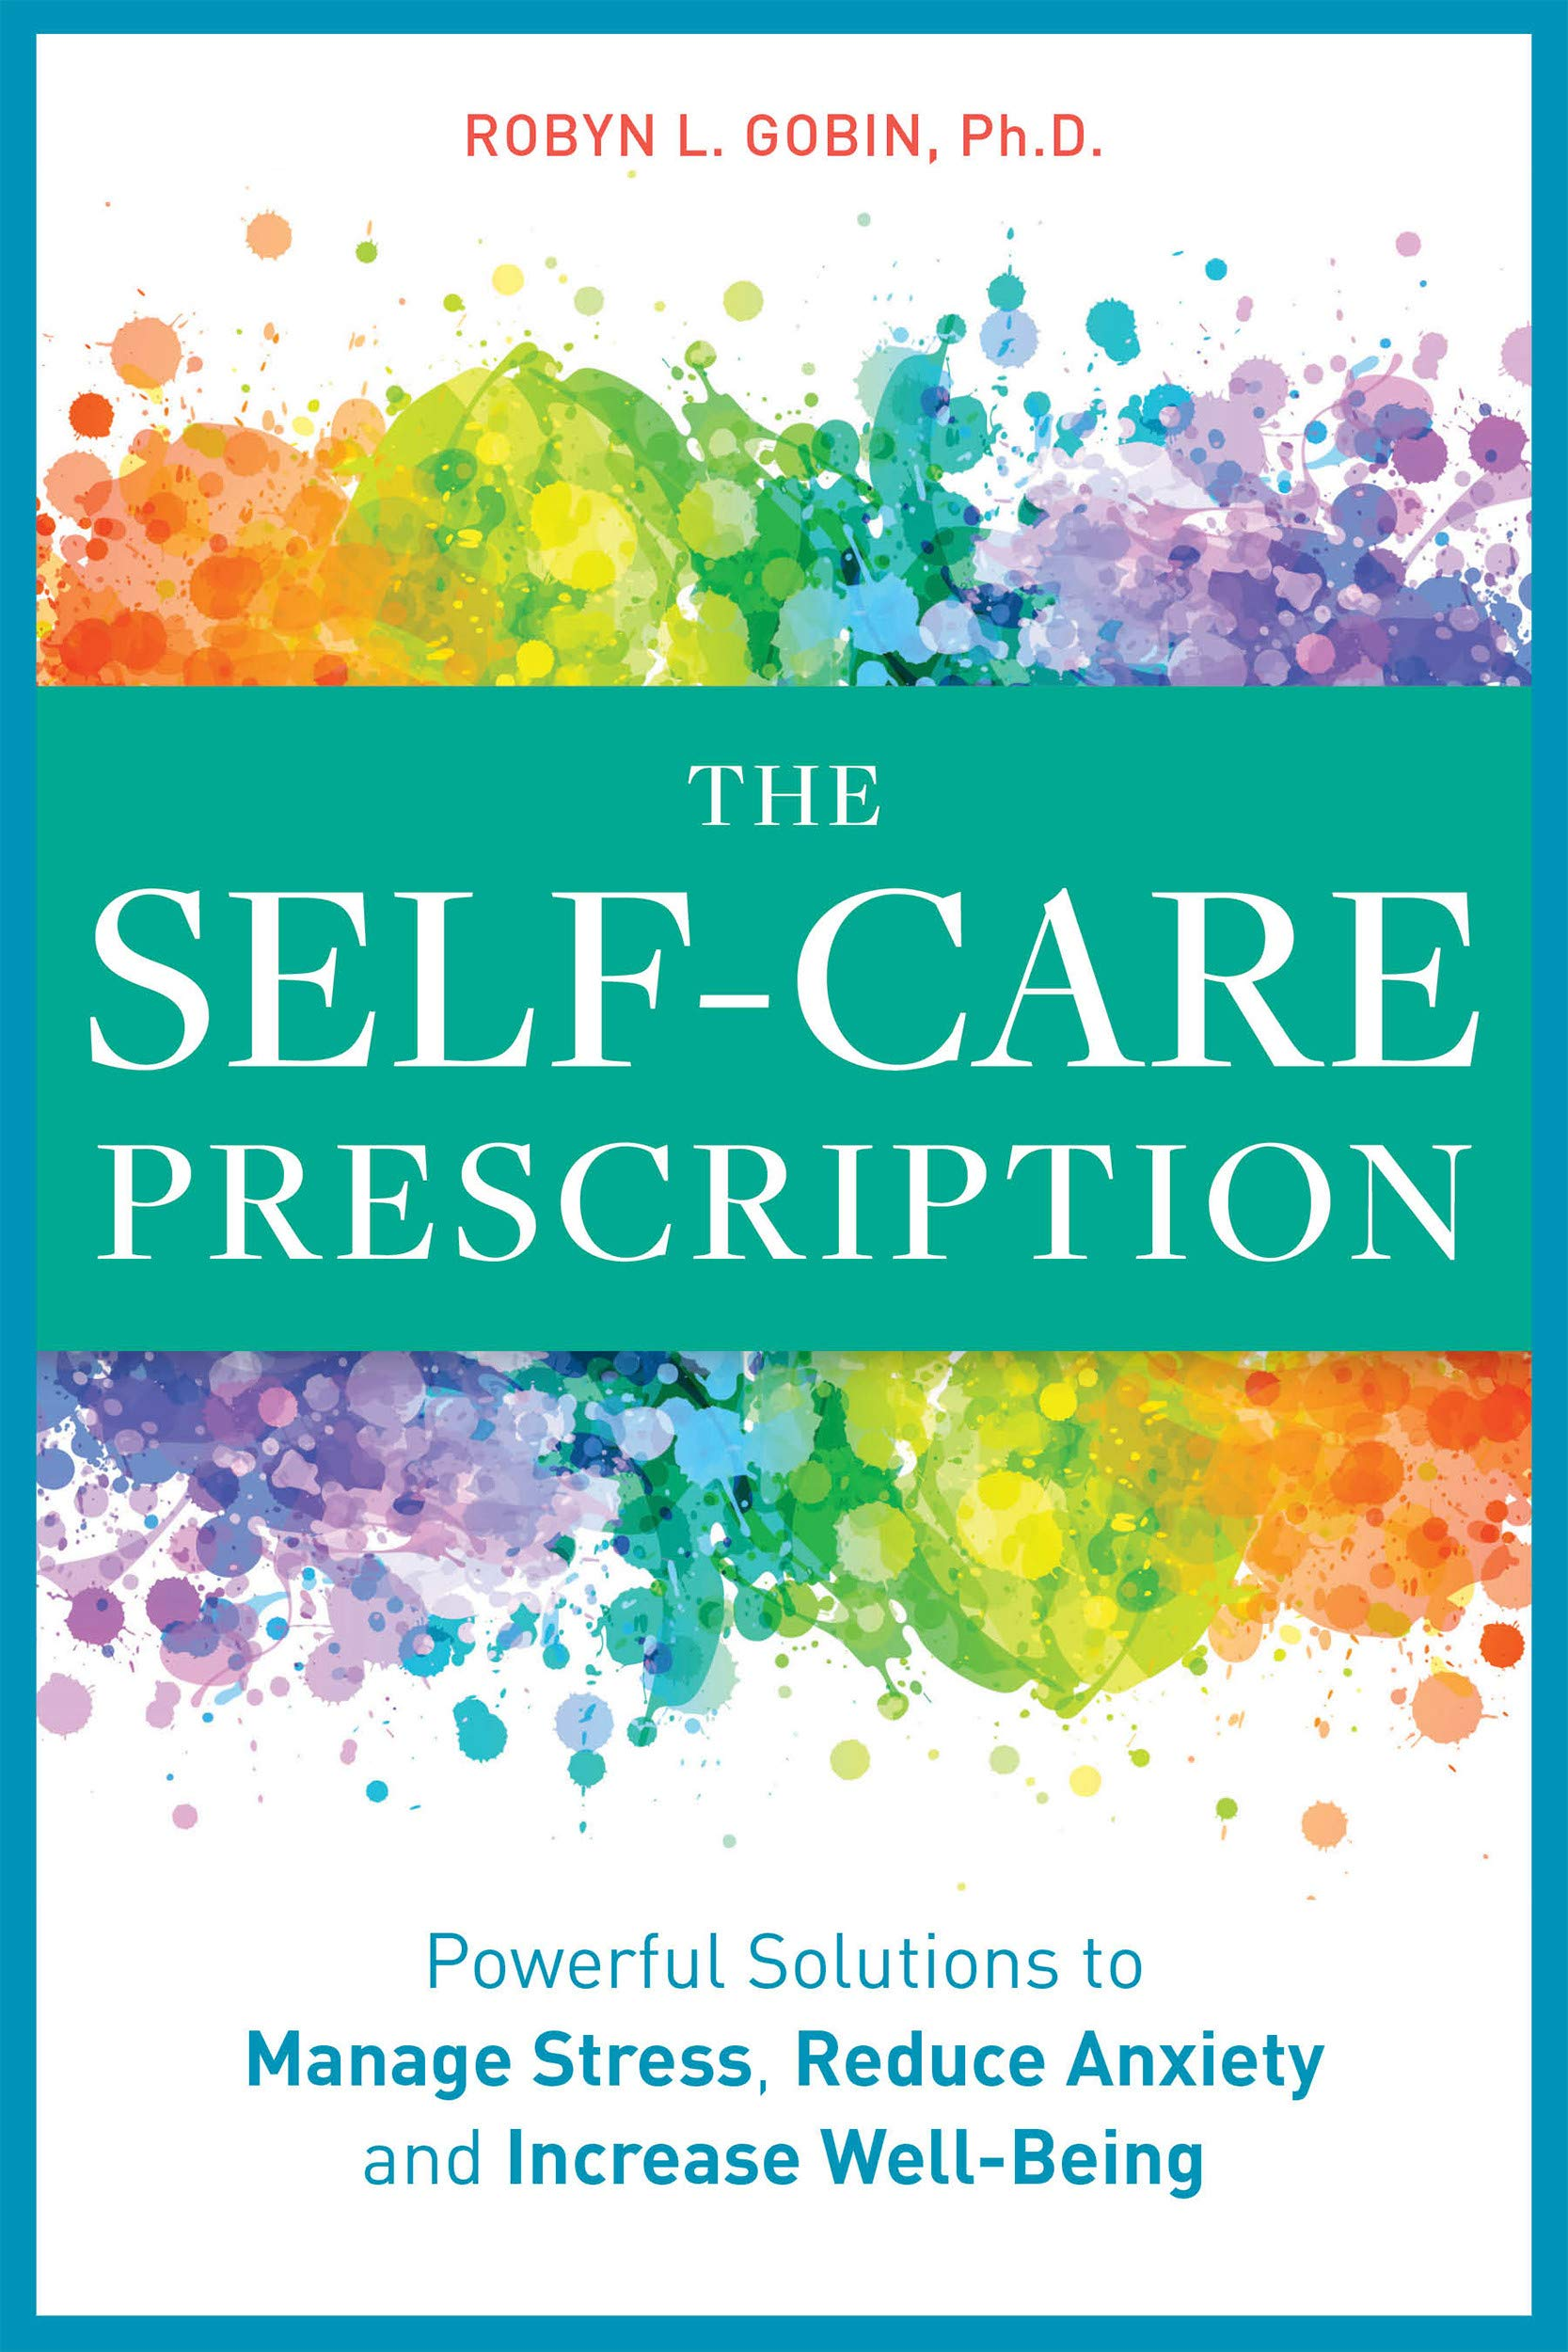 The Self-Care Prescription